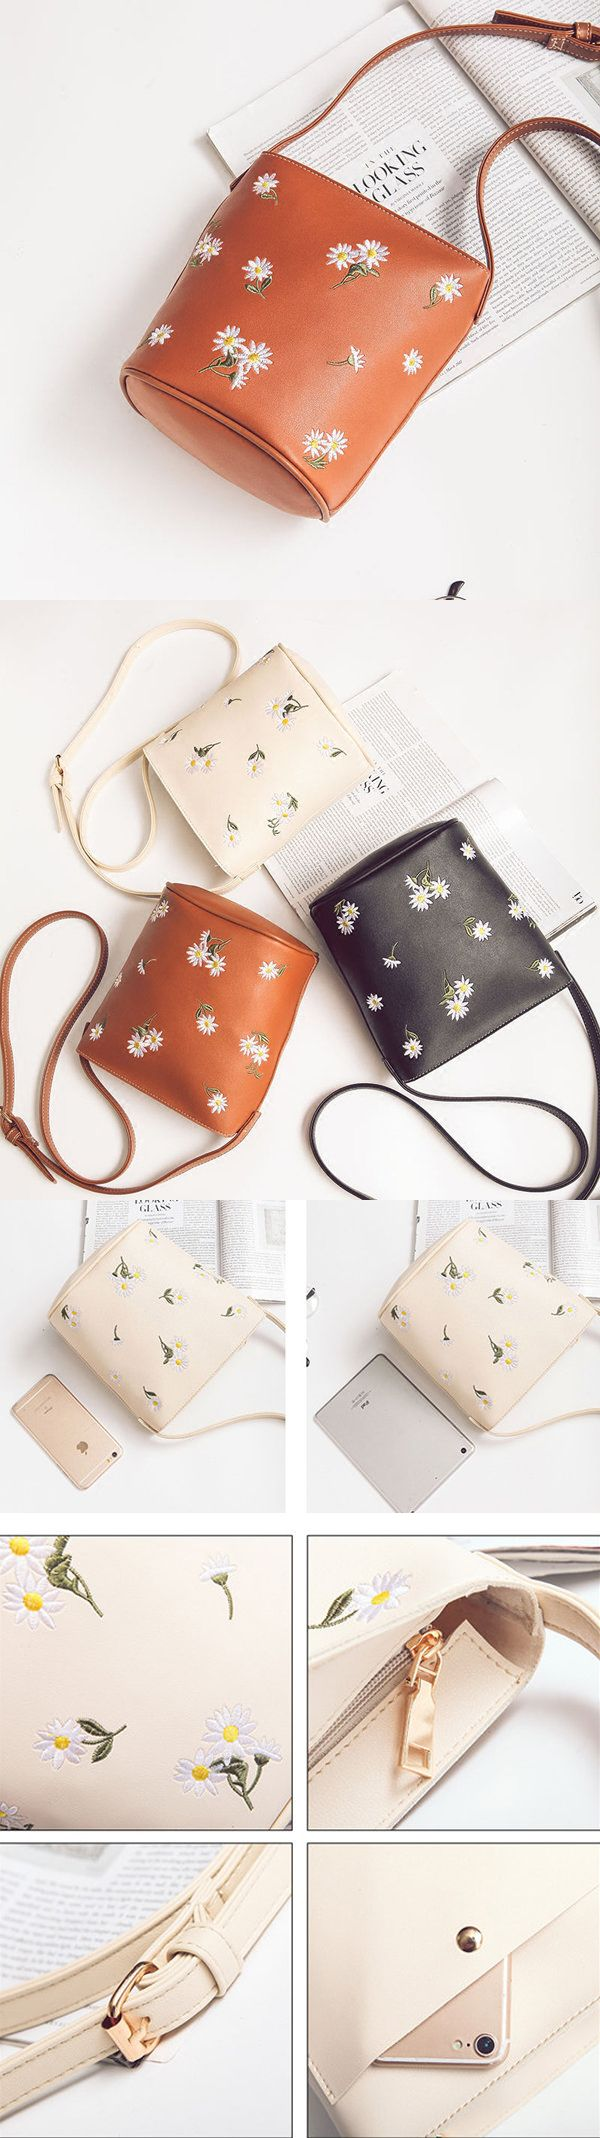 Women Floral Embroidery Bucket Bags Mini Crossbody Bags